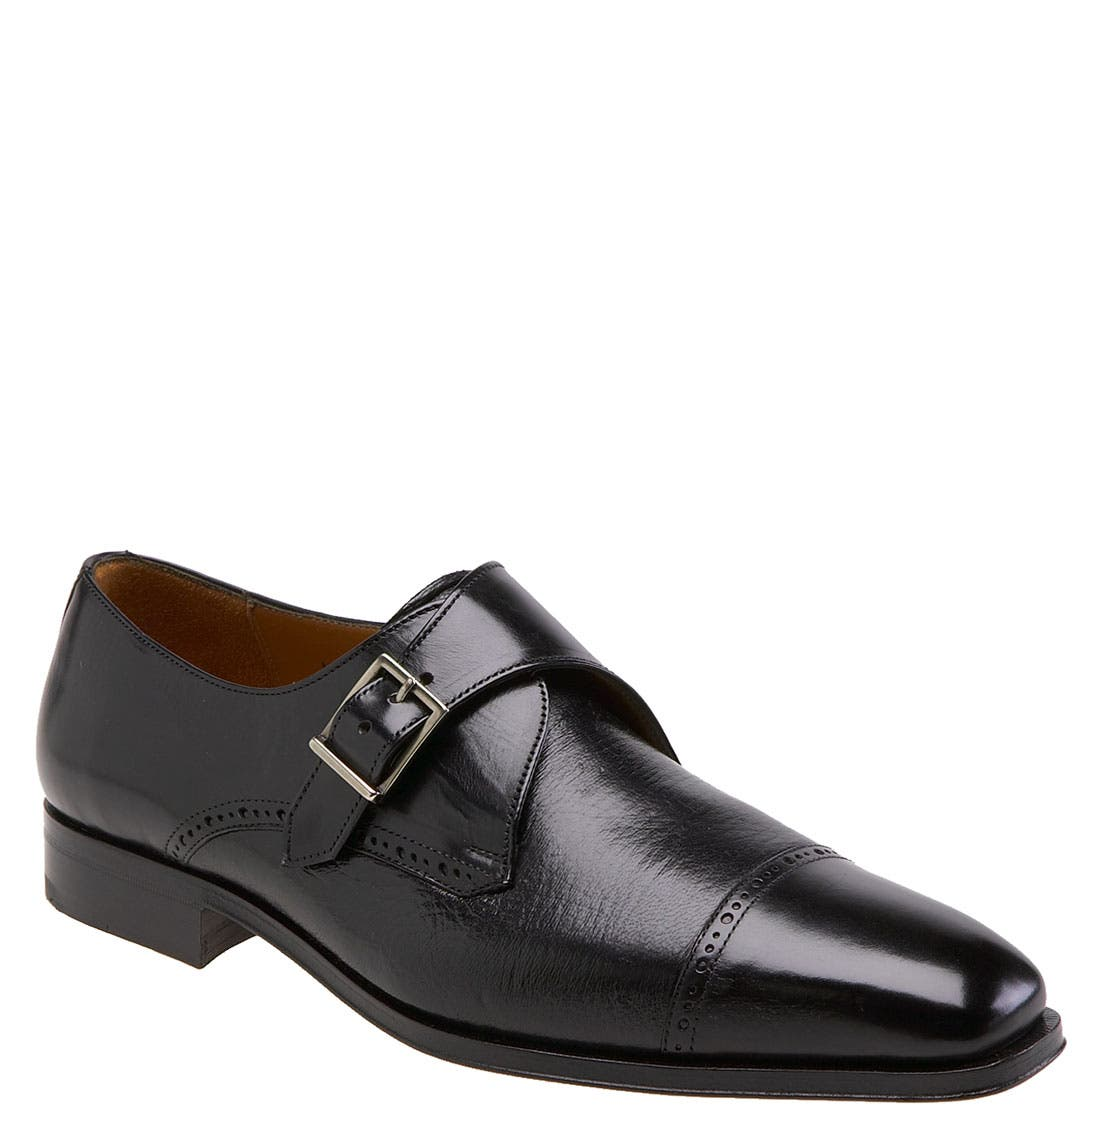 Alternate Image 1 Selected - Mezlan 'Mercker II' Monk Strap Loafer